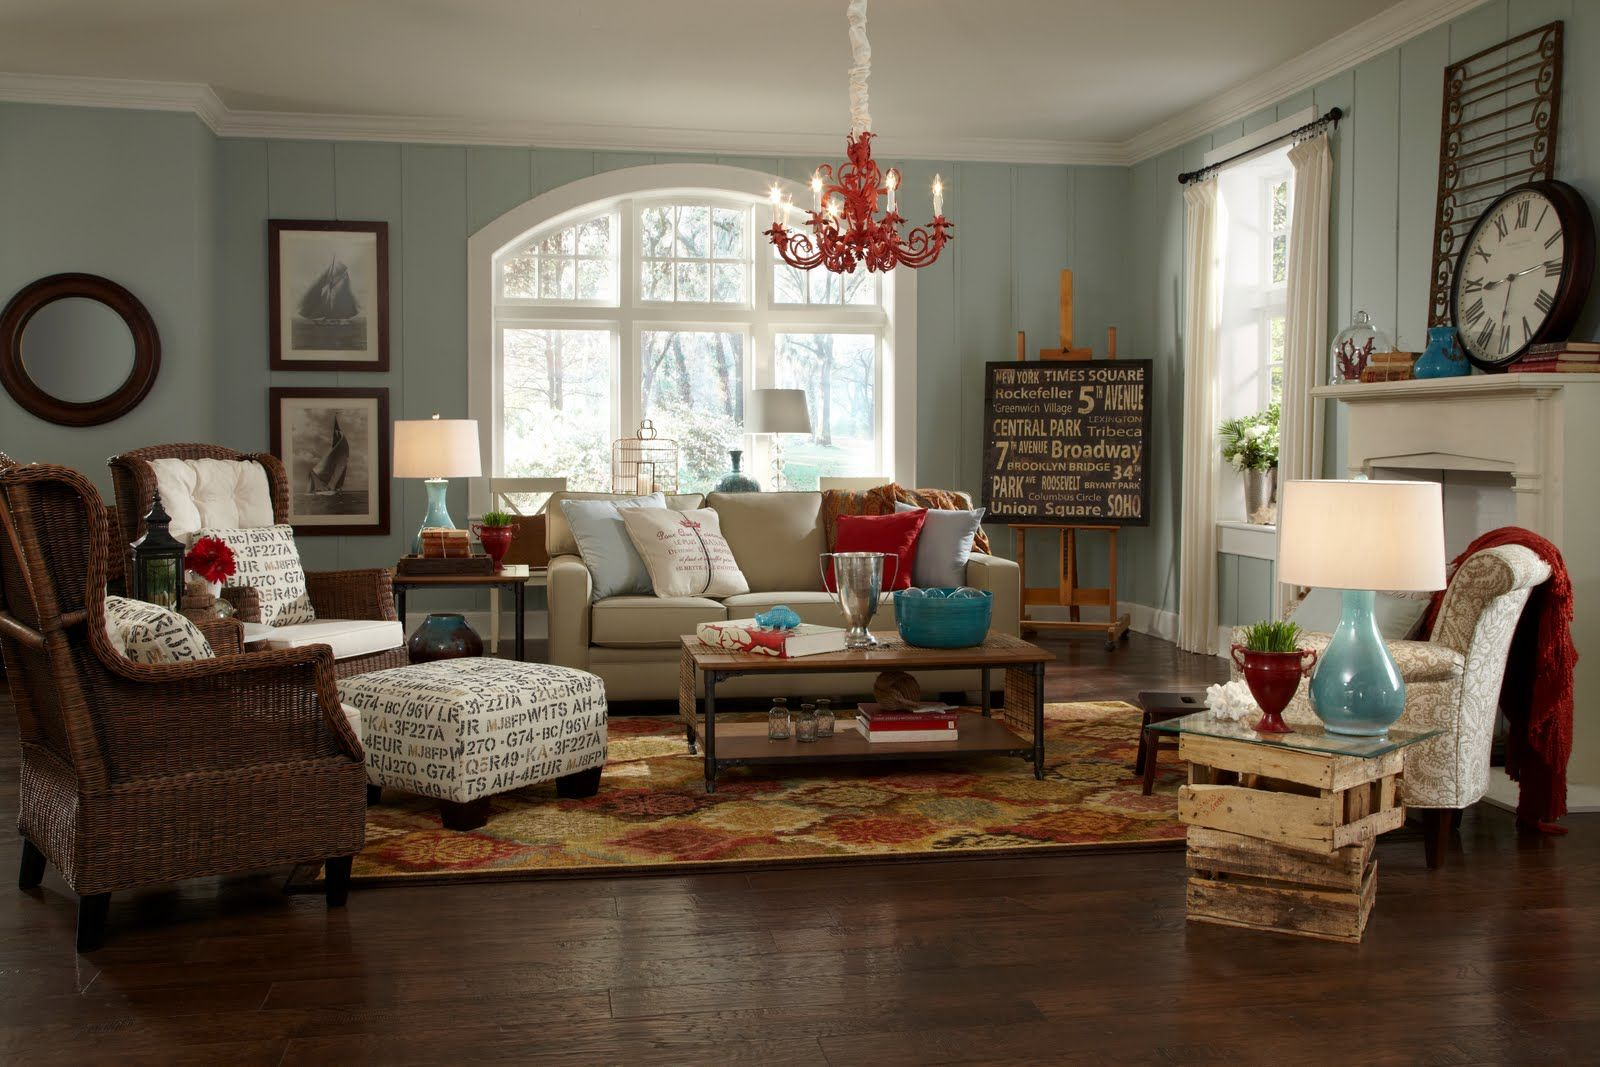 Using An Inspiration Photo To Design A Room. Wall ColorsHouse ...